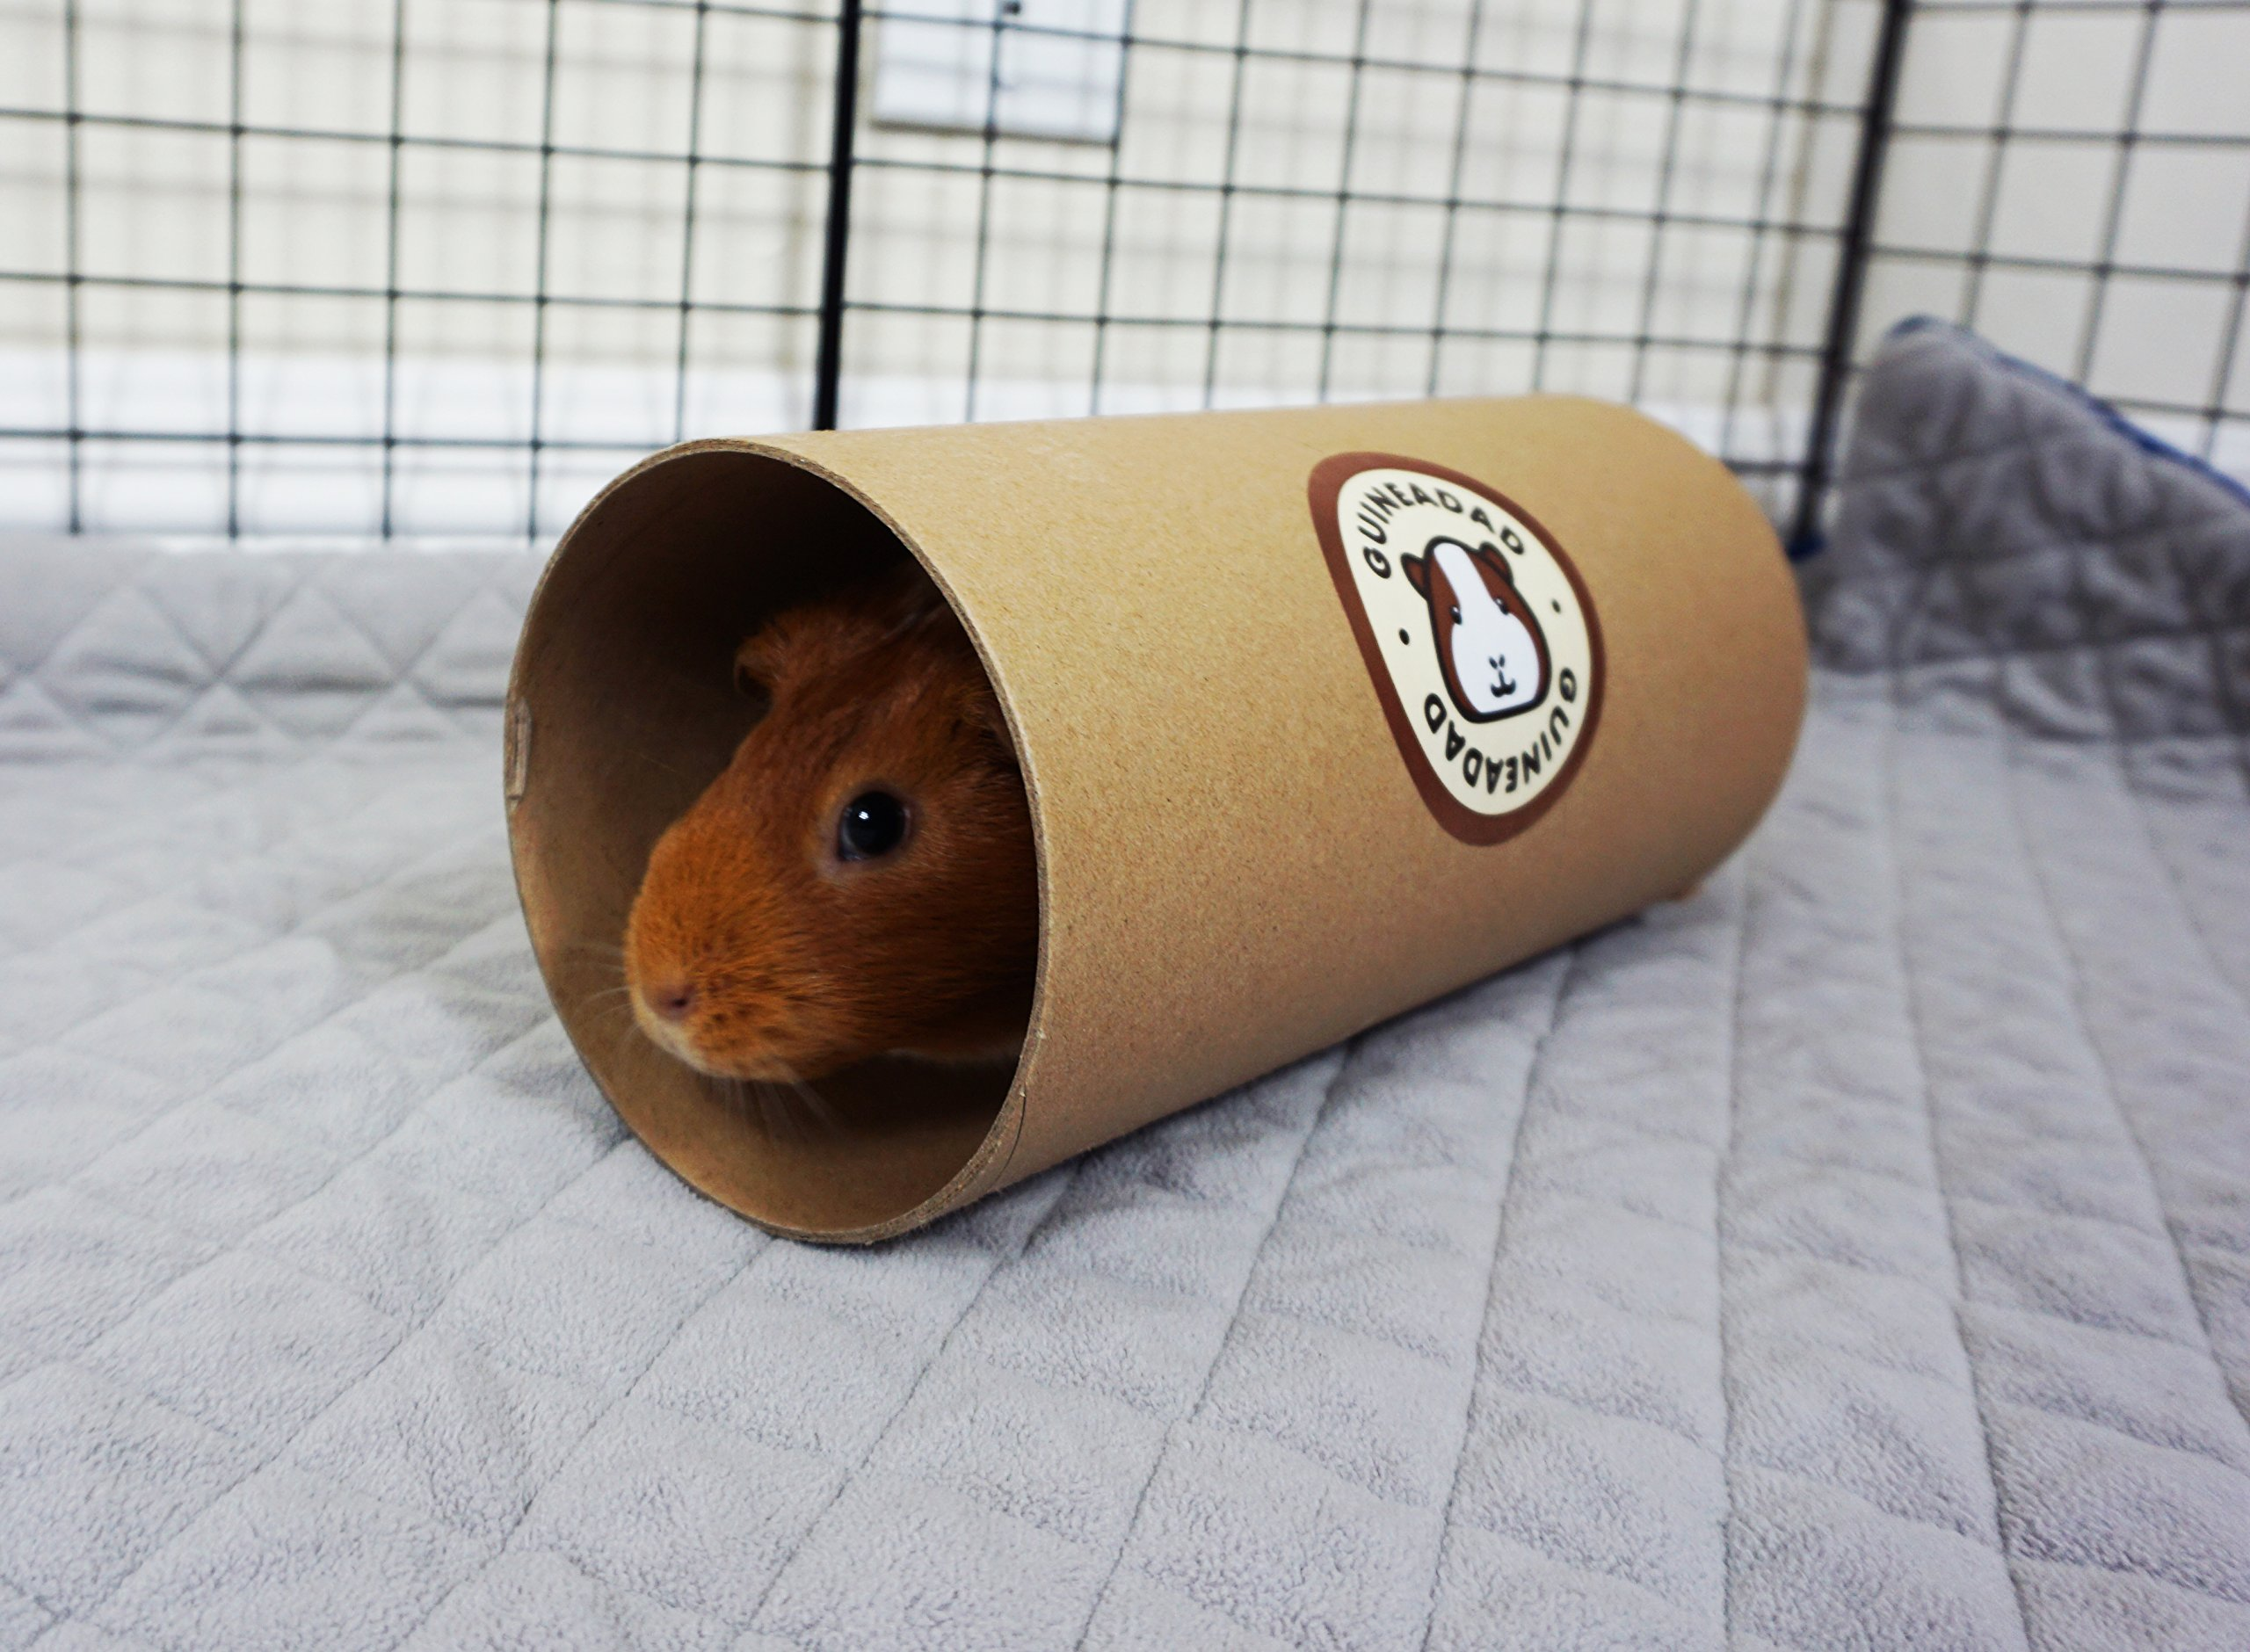 GuineaDad Fleece Liner 2.0 for | Guinea Pig Fleece Cage Liners | Guinea Pig Bedding | Extra Absorbent Antibacterial Bamboo | Waterproof | Available Various Cage Sizes by GuineaDad (Image #4)